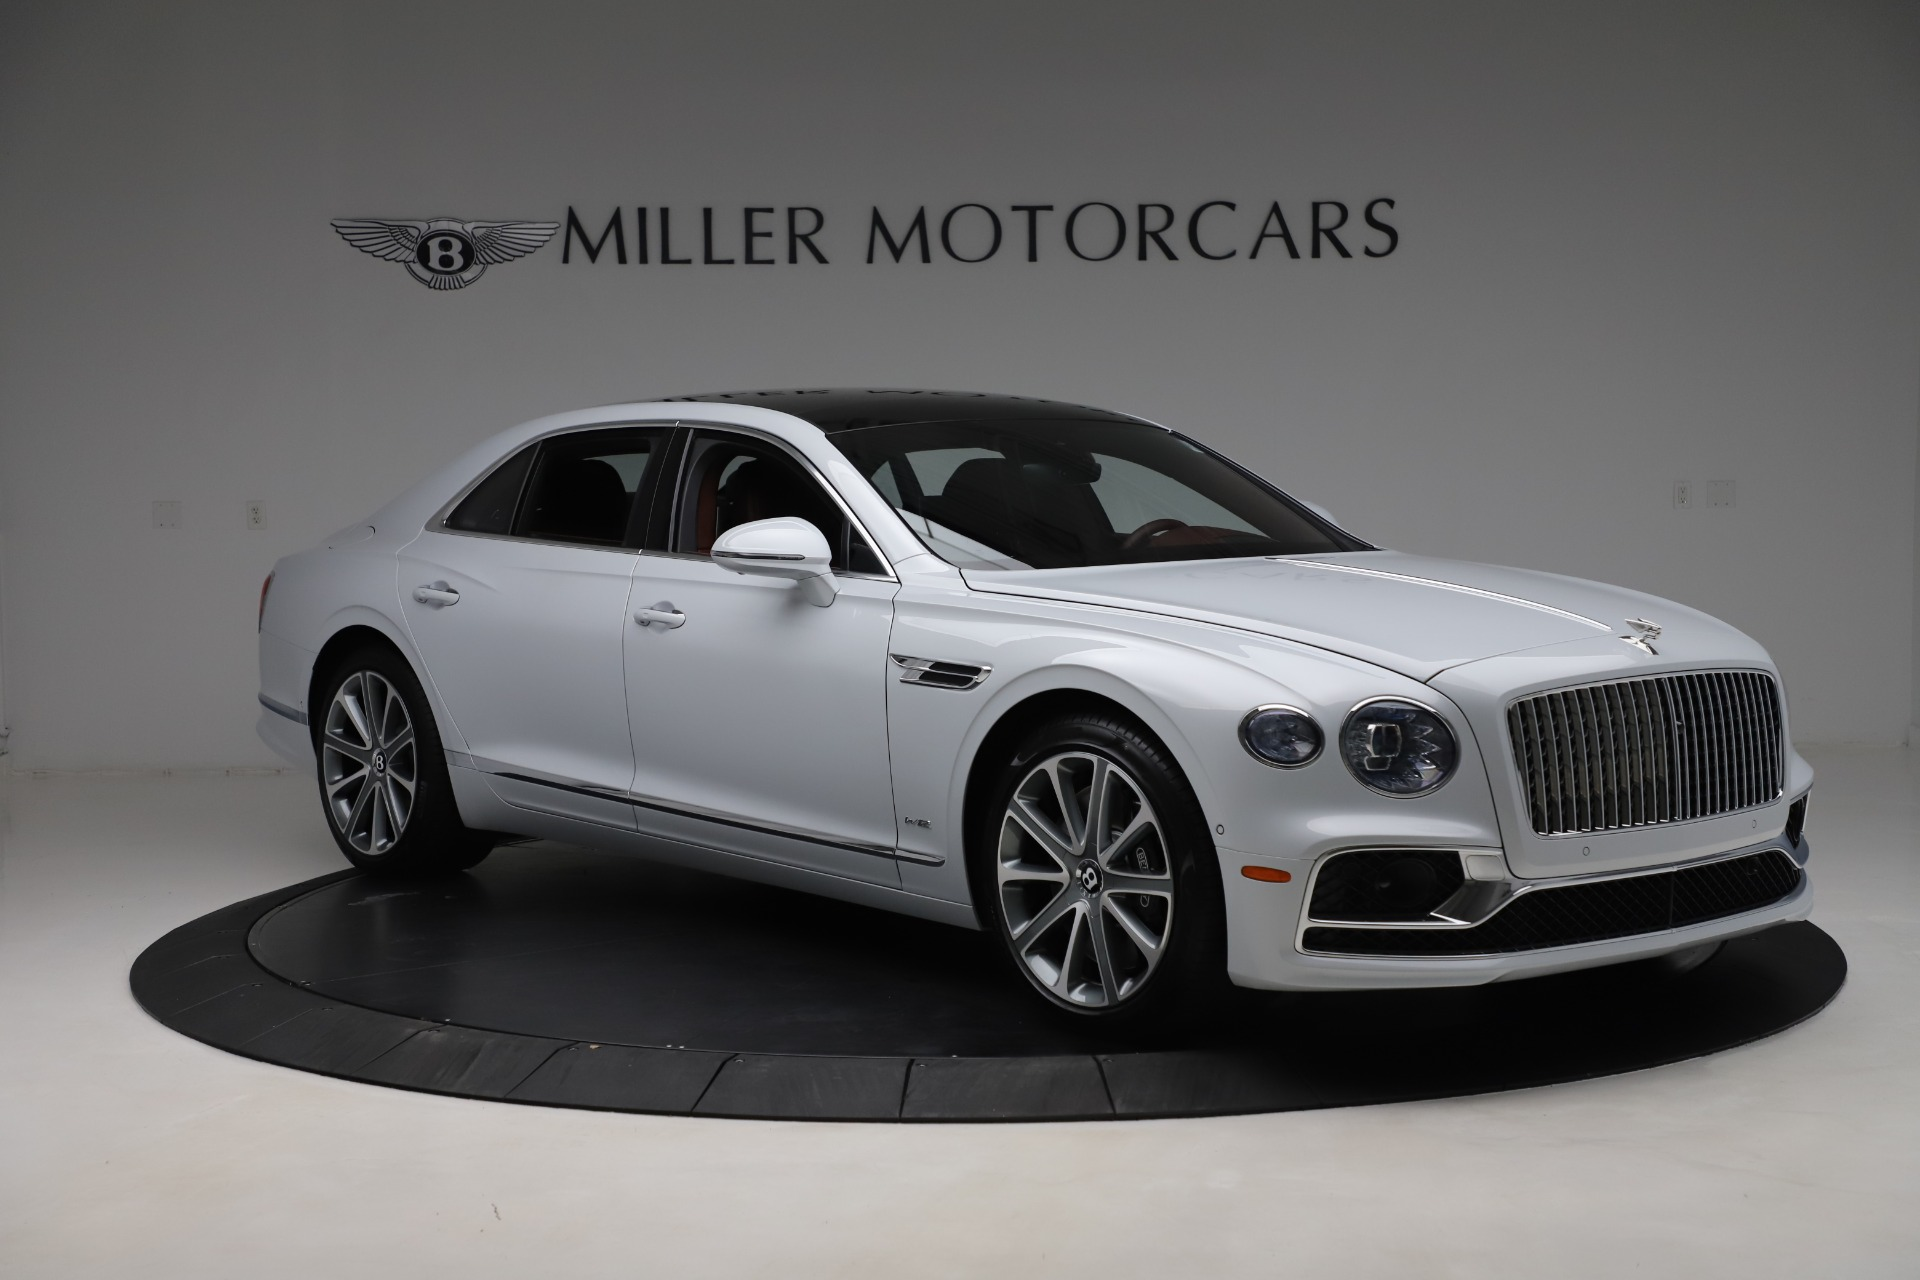 New 2021 Bentley Flying Spur  For Sale In Westport, CT 3230_p11